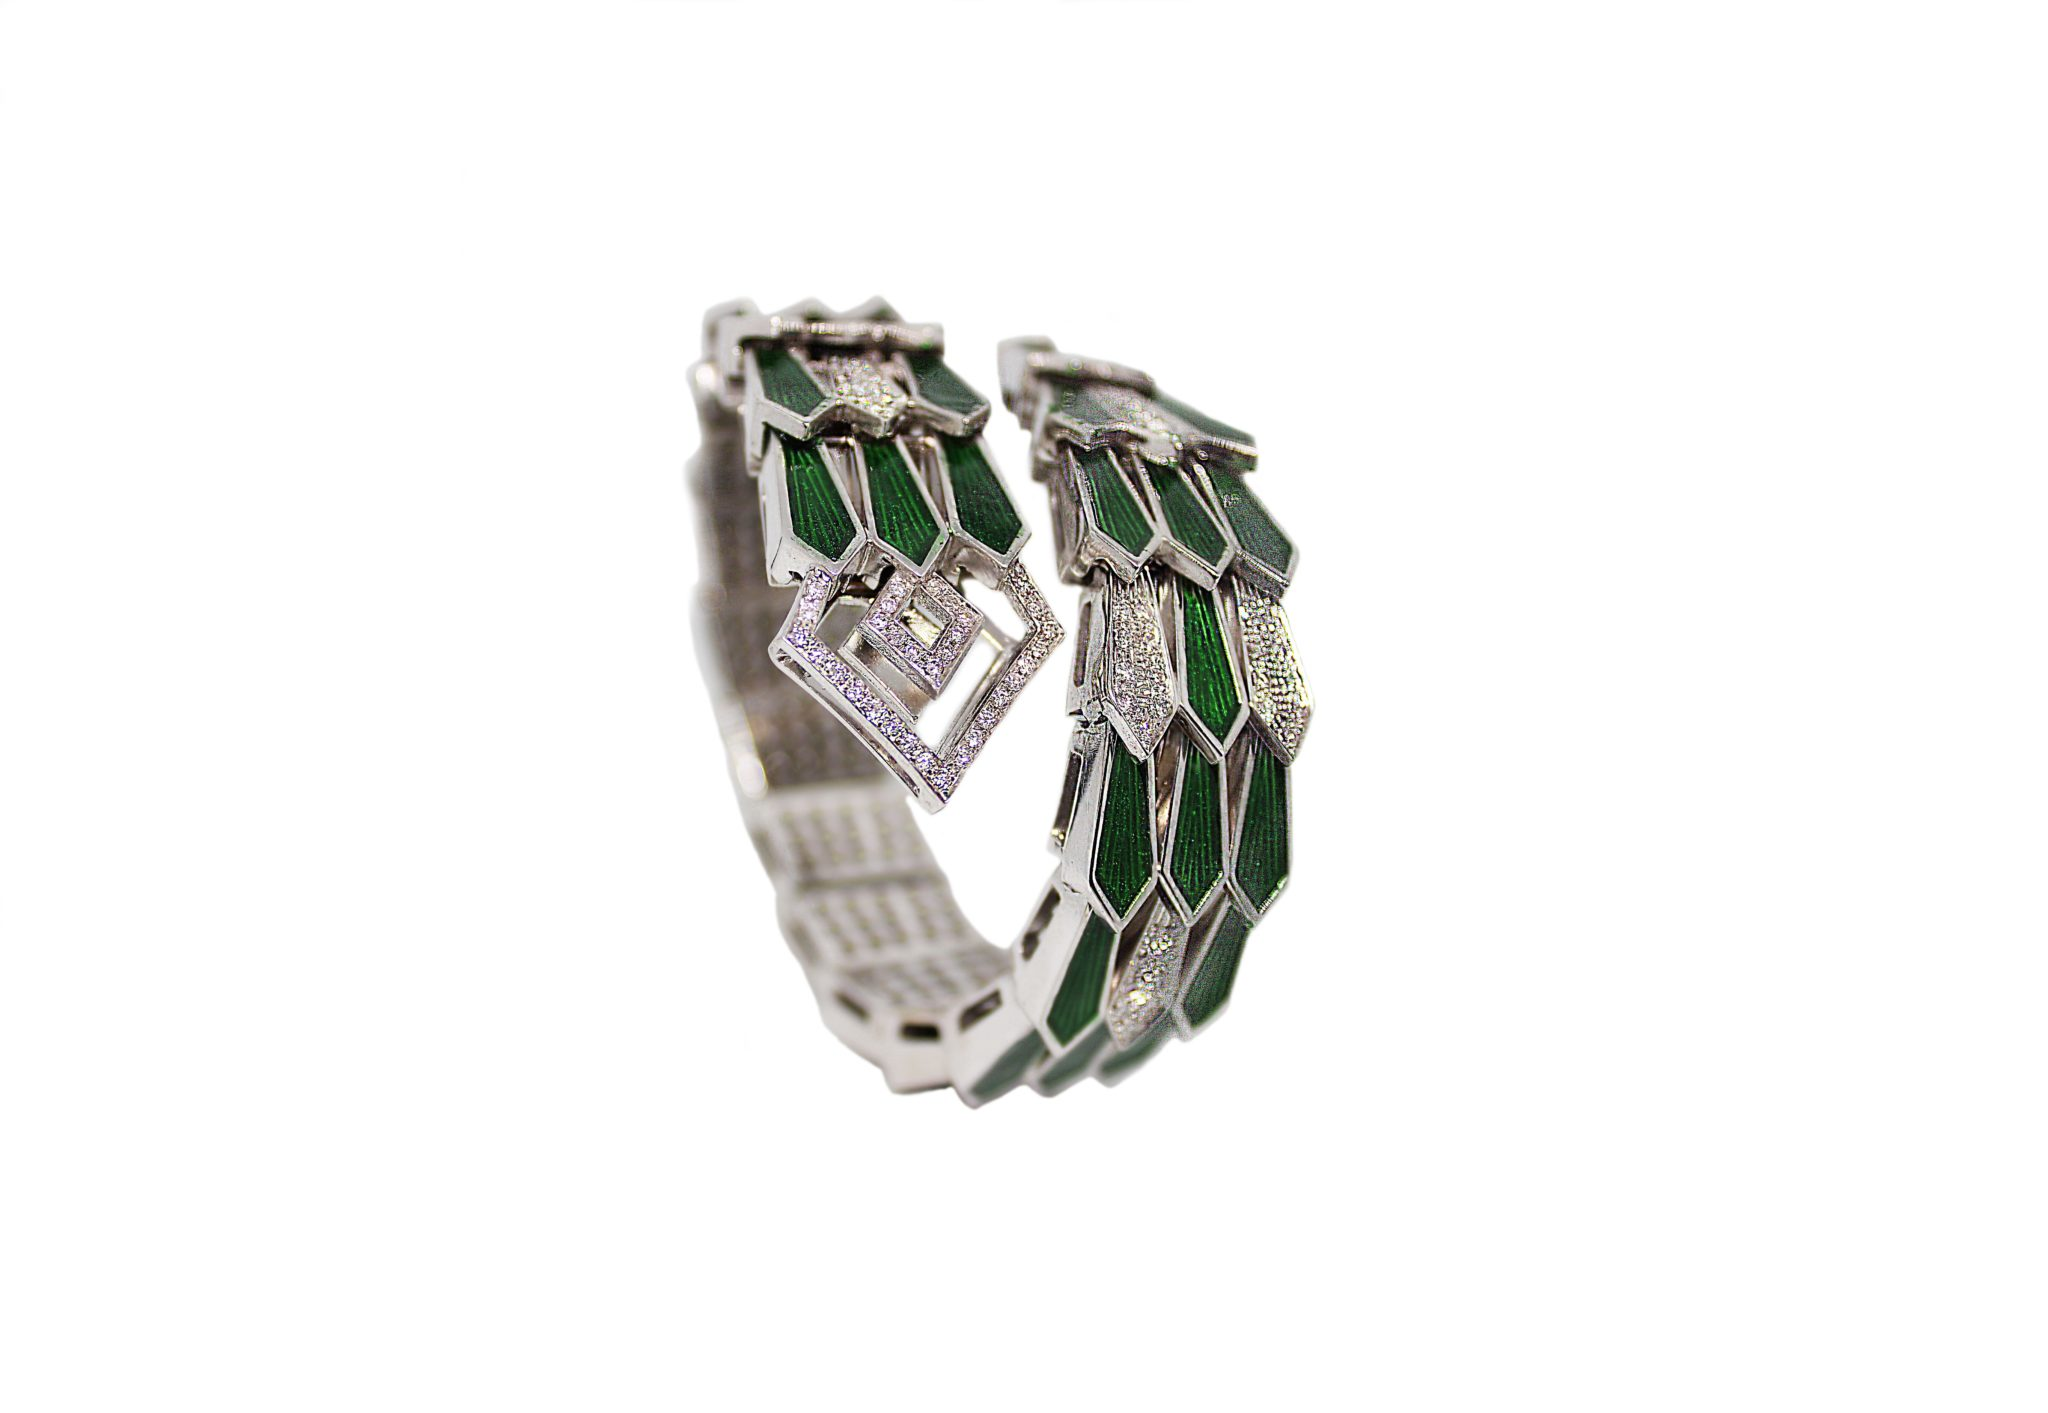 White gold spiral triple snake bracelet with diamonds and green enamel